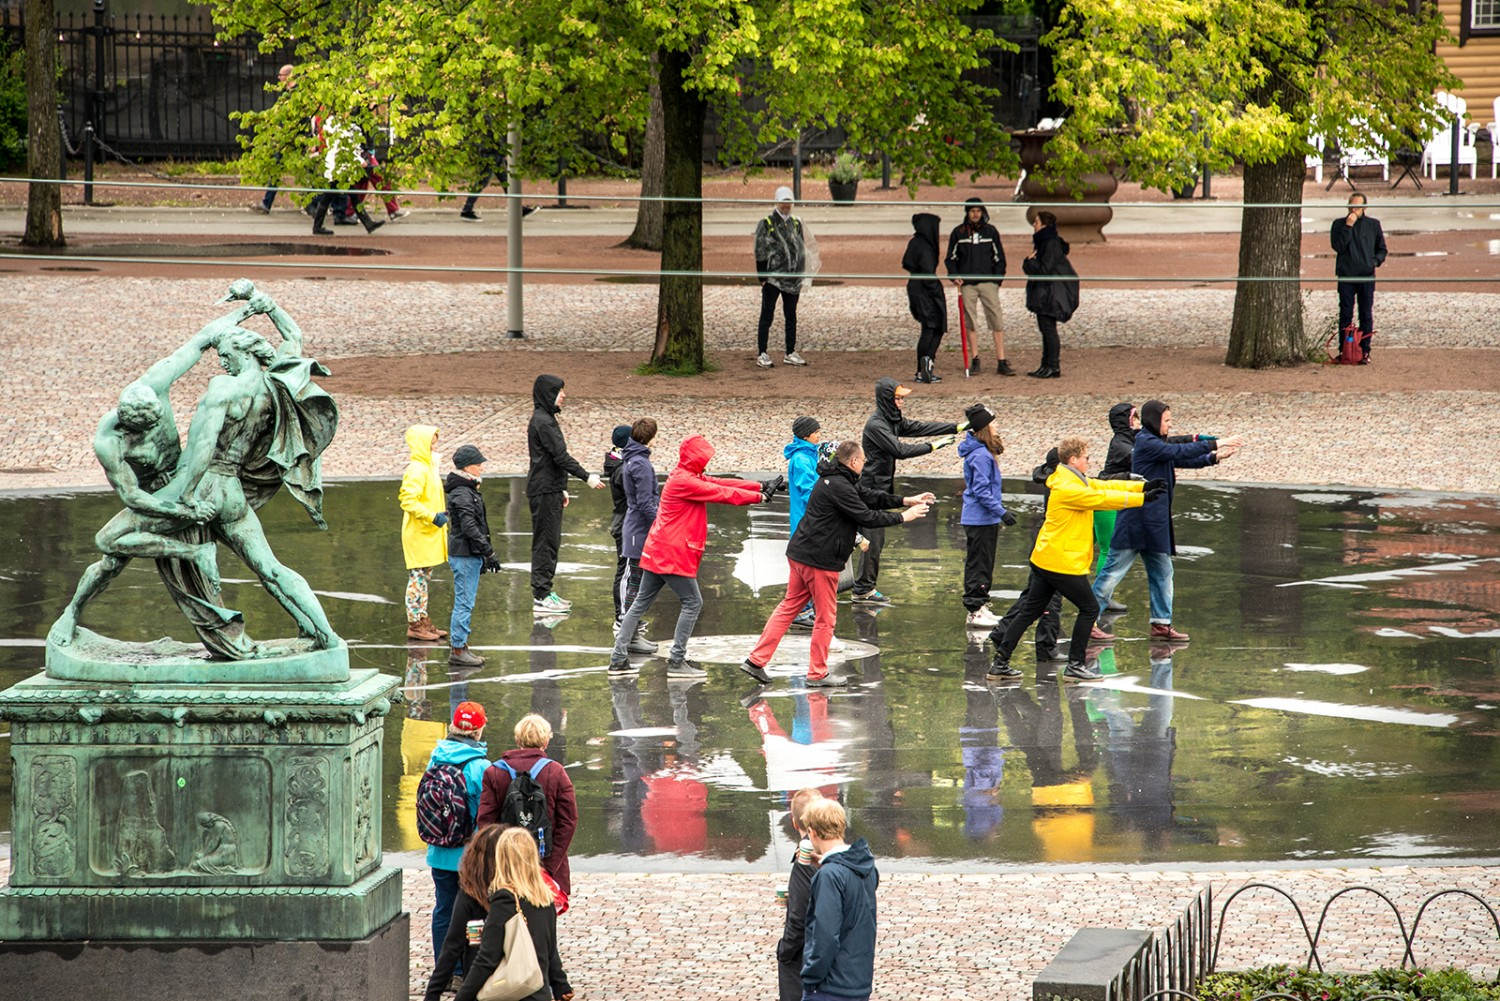 A group of people in raincoats. Each person is strectching out his arm.